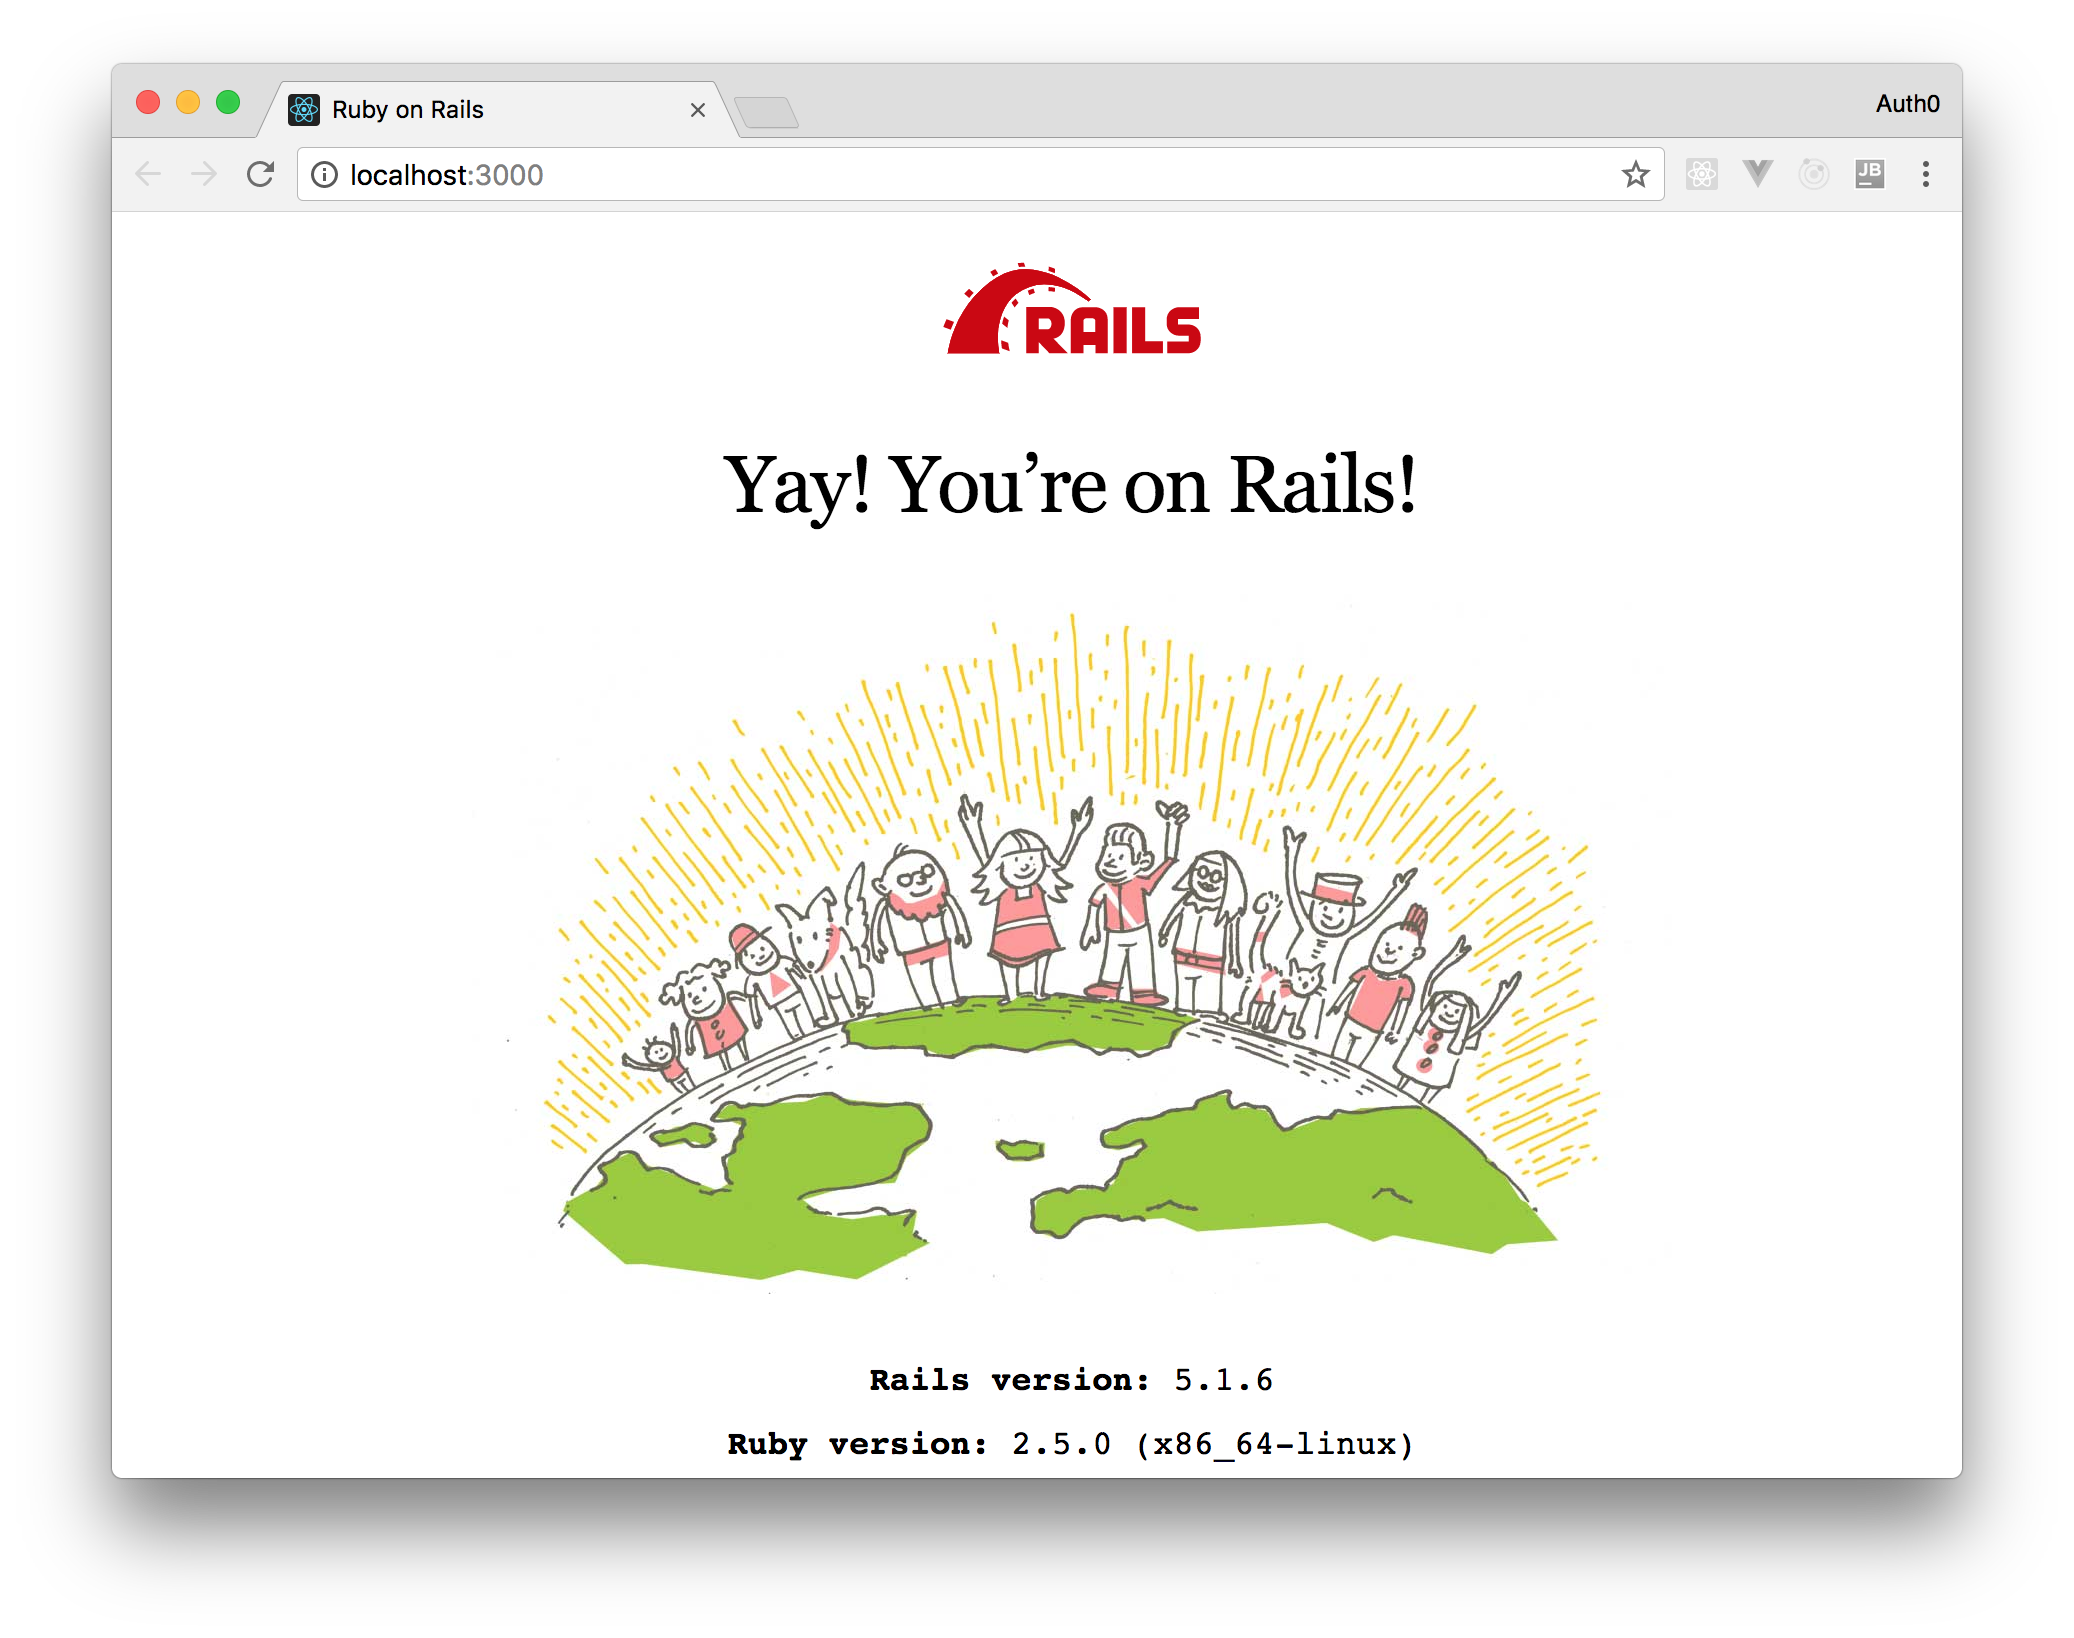 Docker and Ruby on Rails